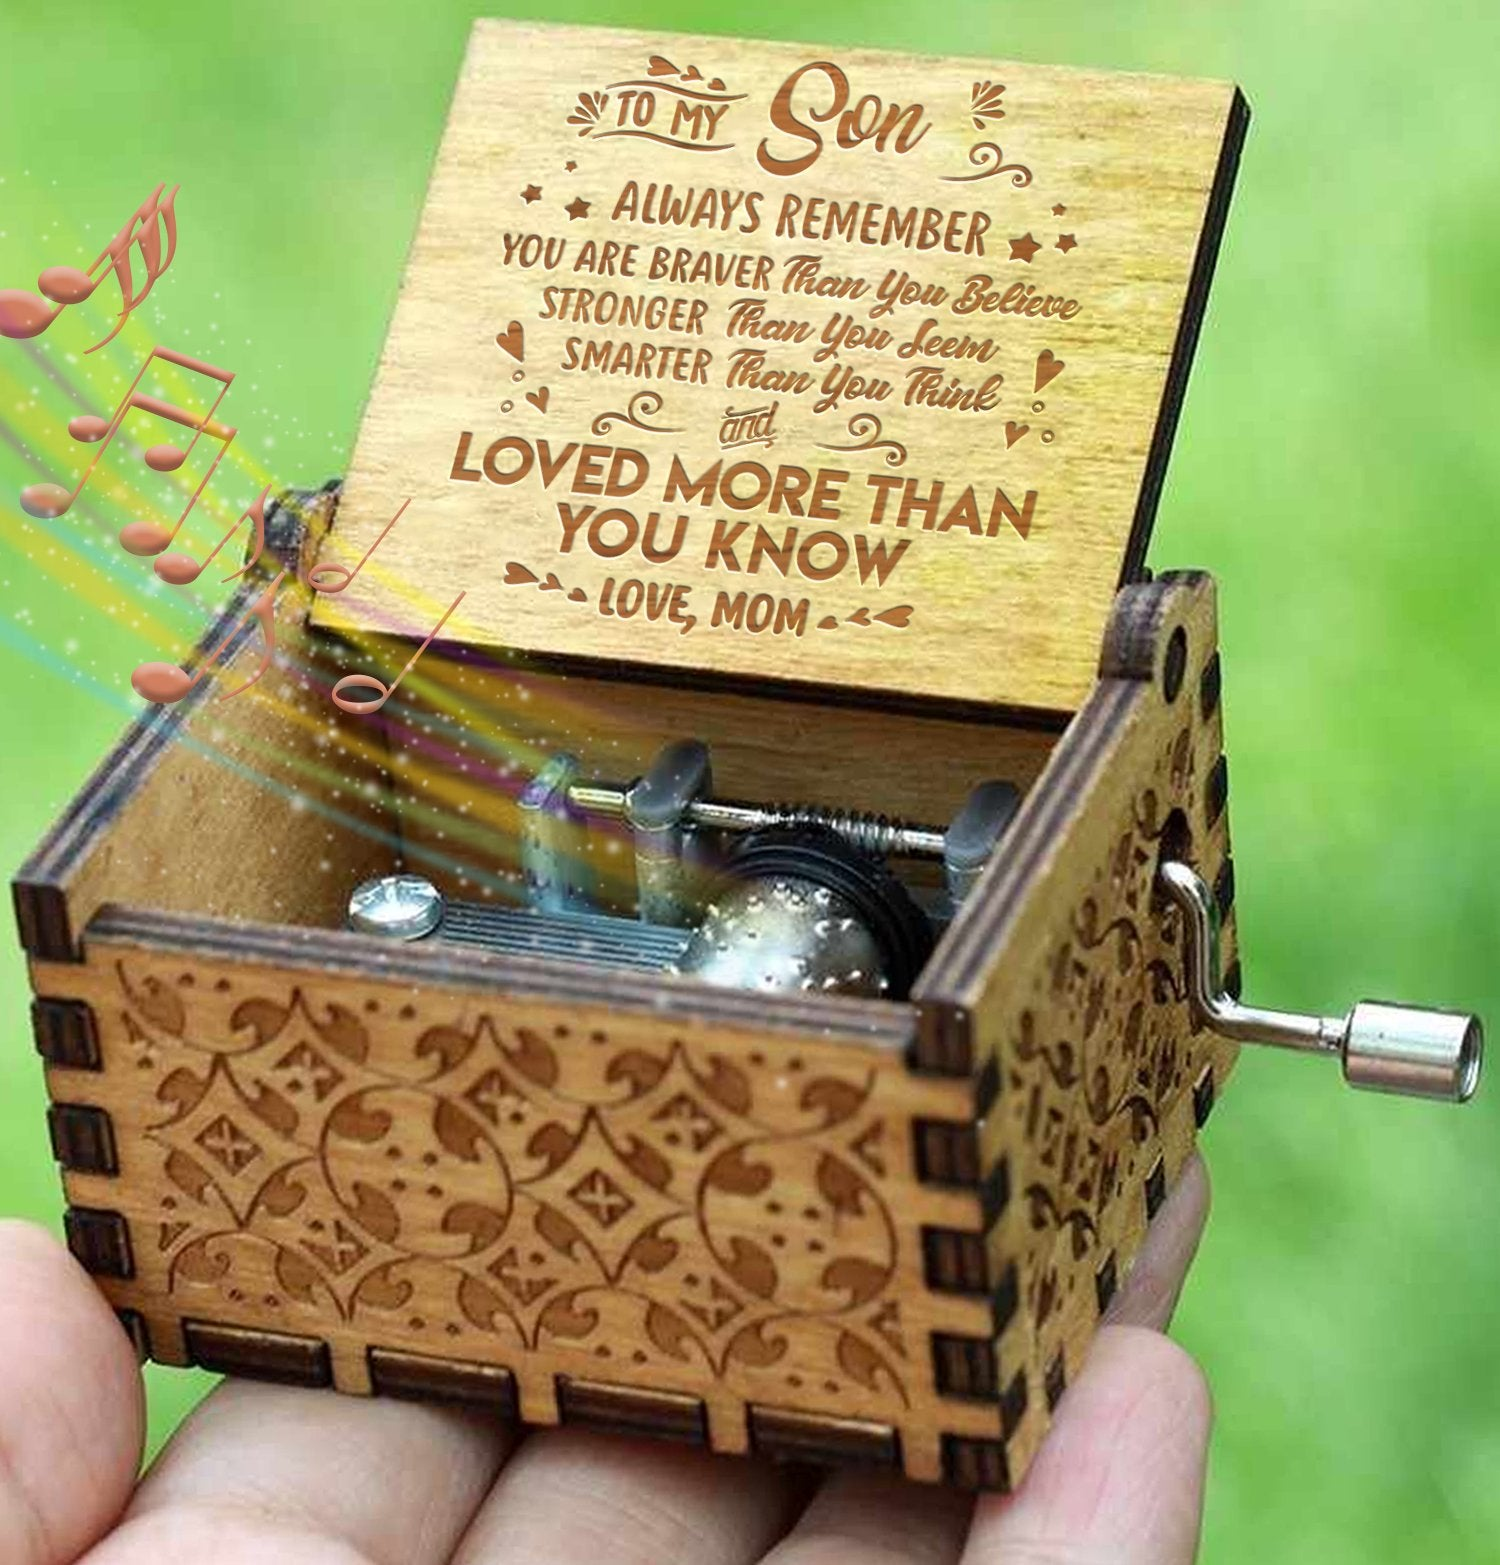 Mom To Son - You Are Loved More Than You Know - Engraved Music Box - Candyhousehold